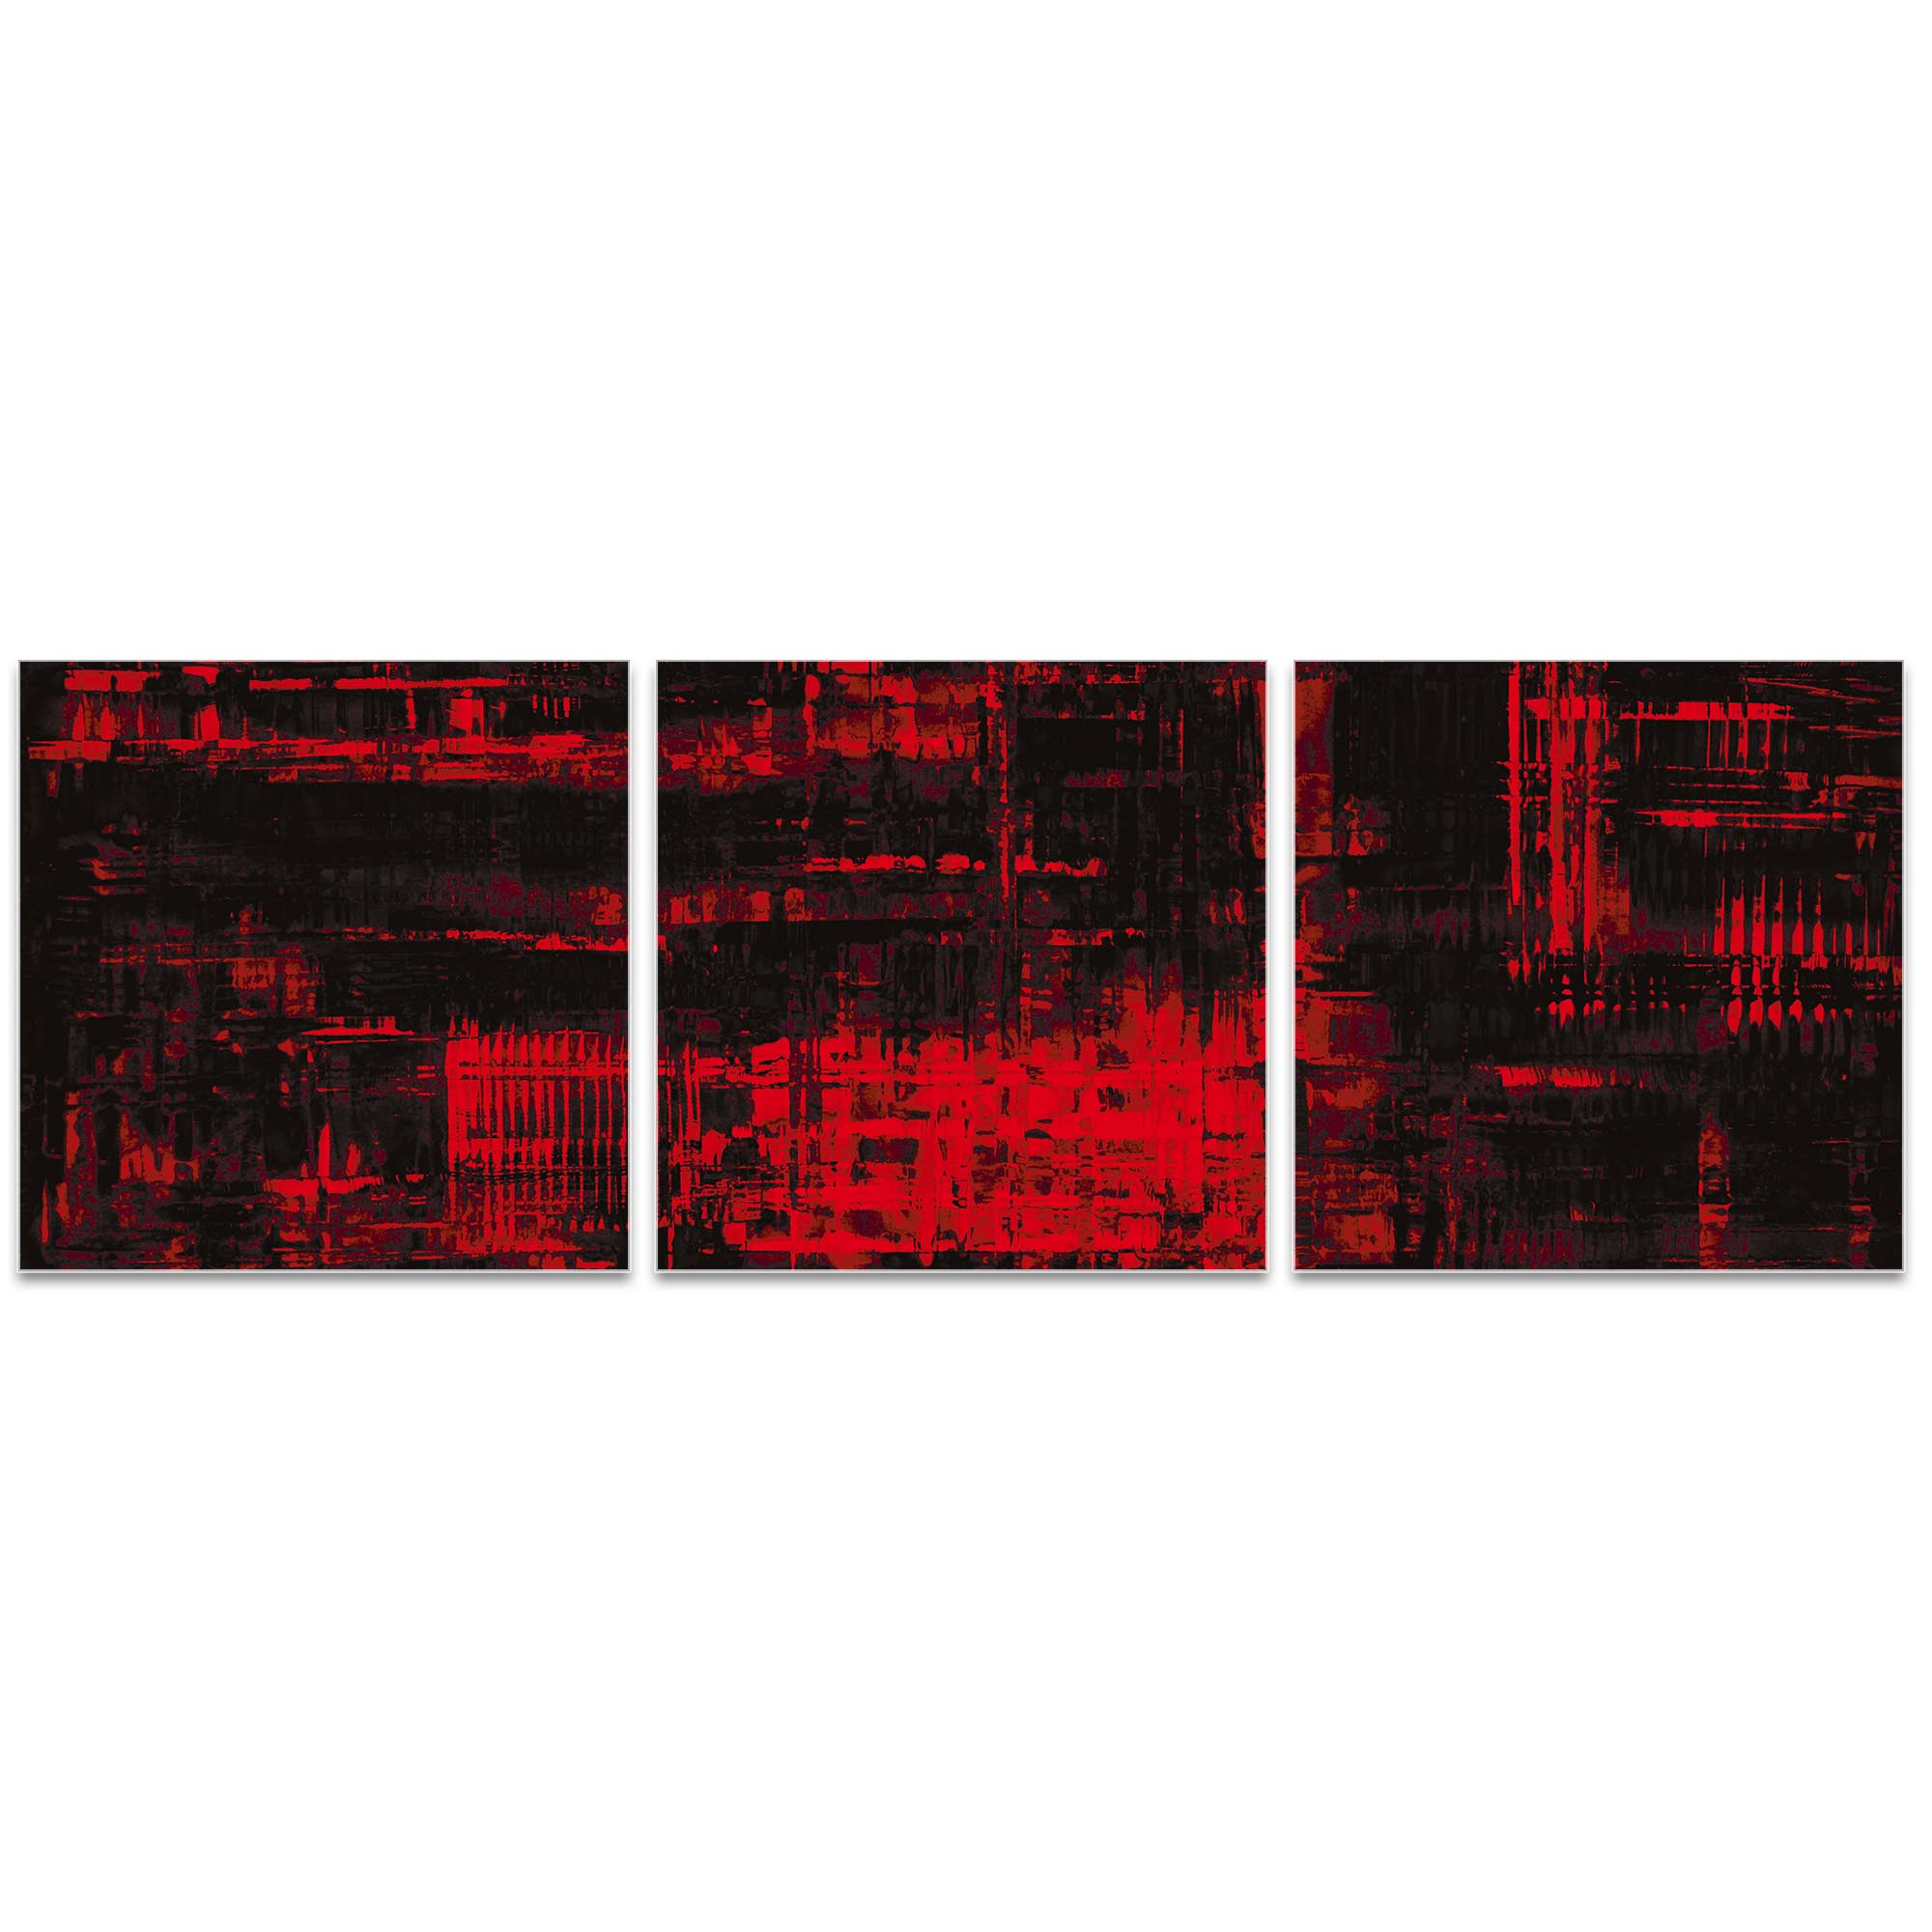 Aporia Red Triptych Large 70x22in. Metal or Acrylic Contemporary Decor - Image 2